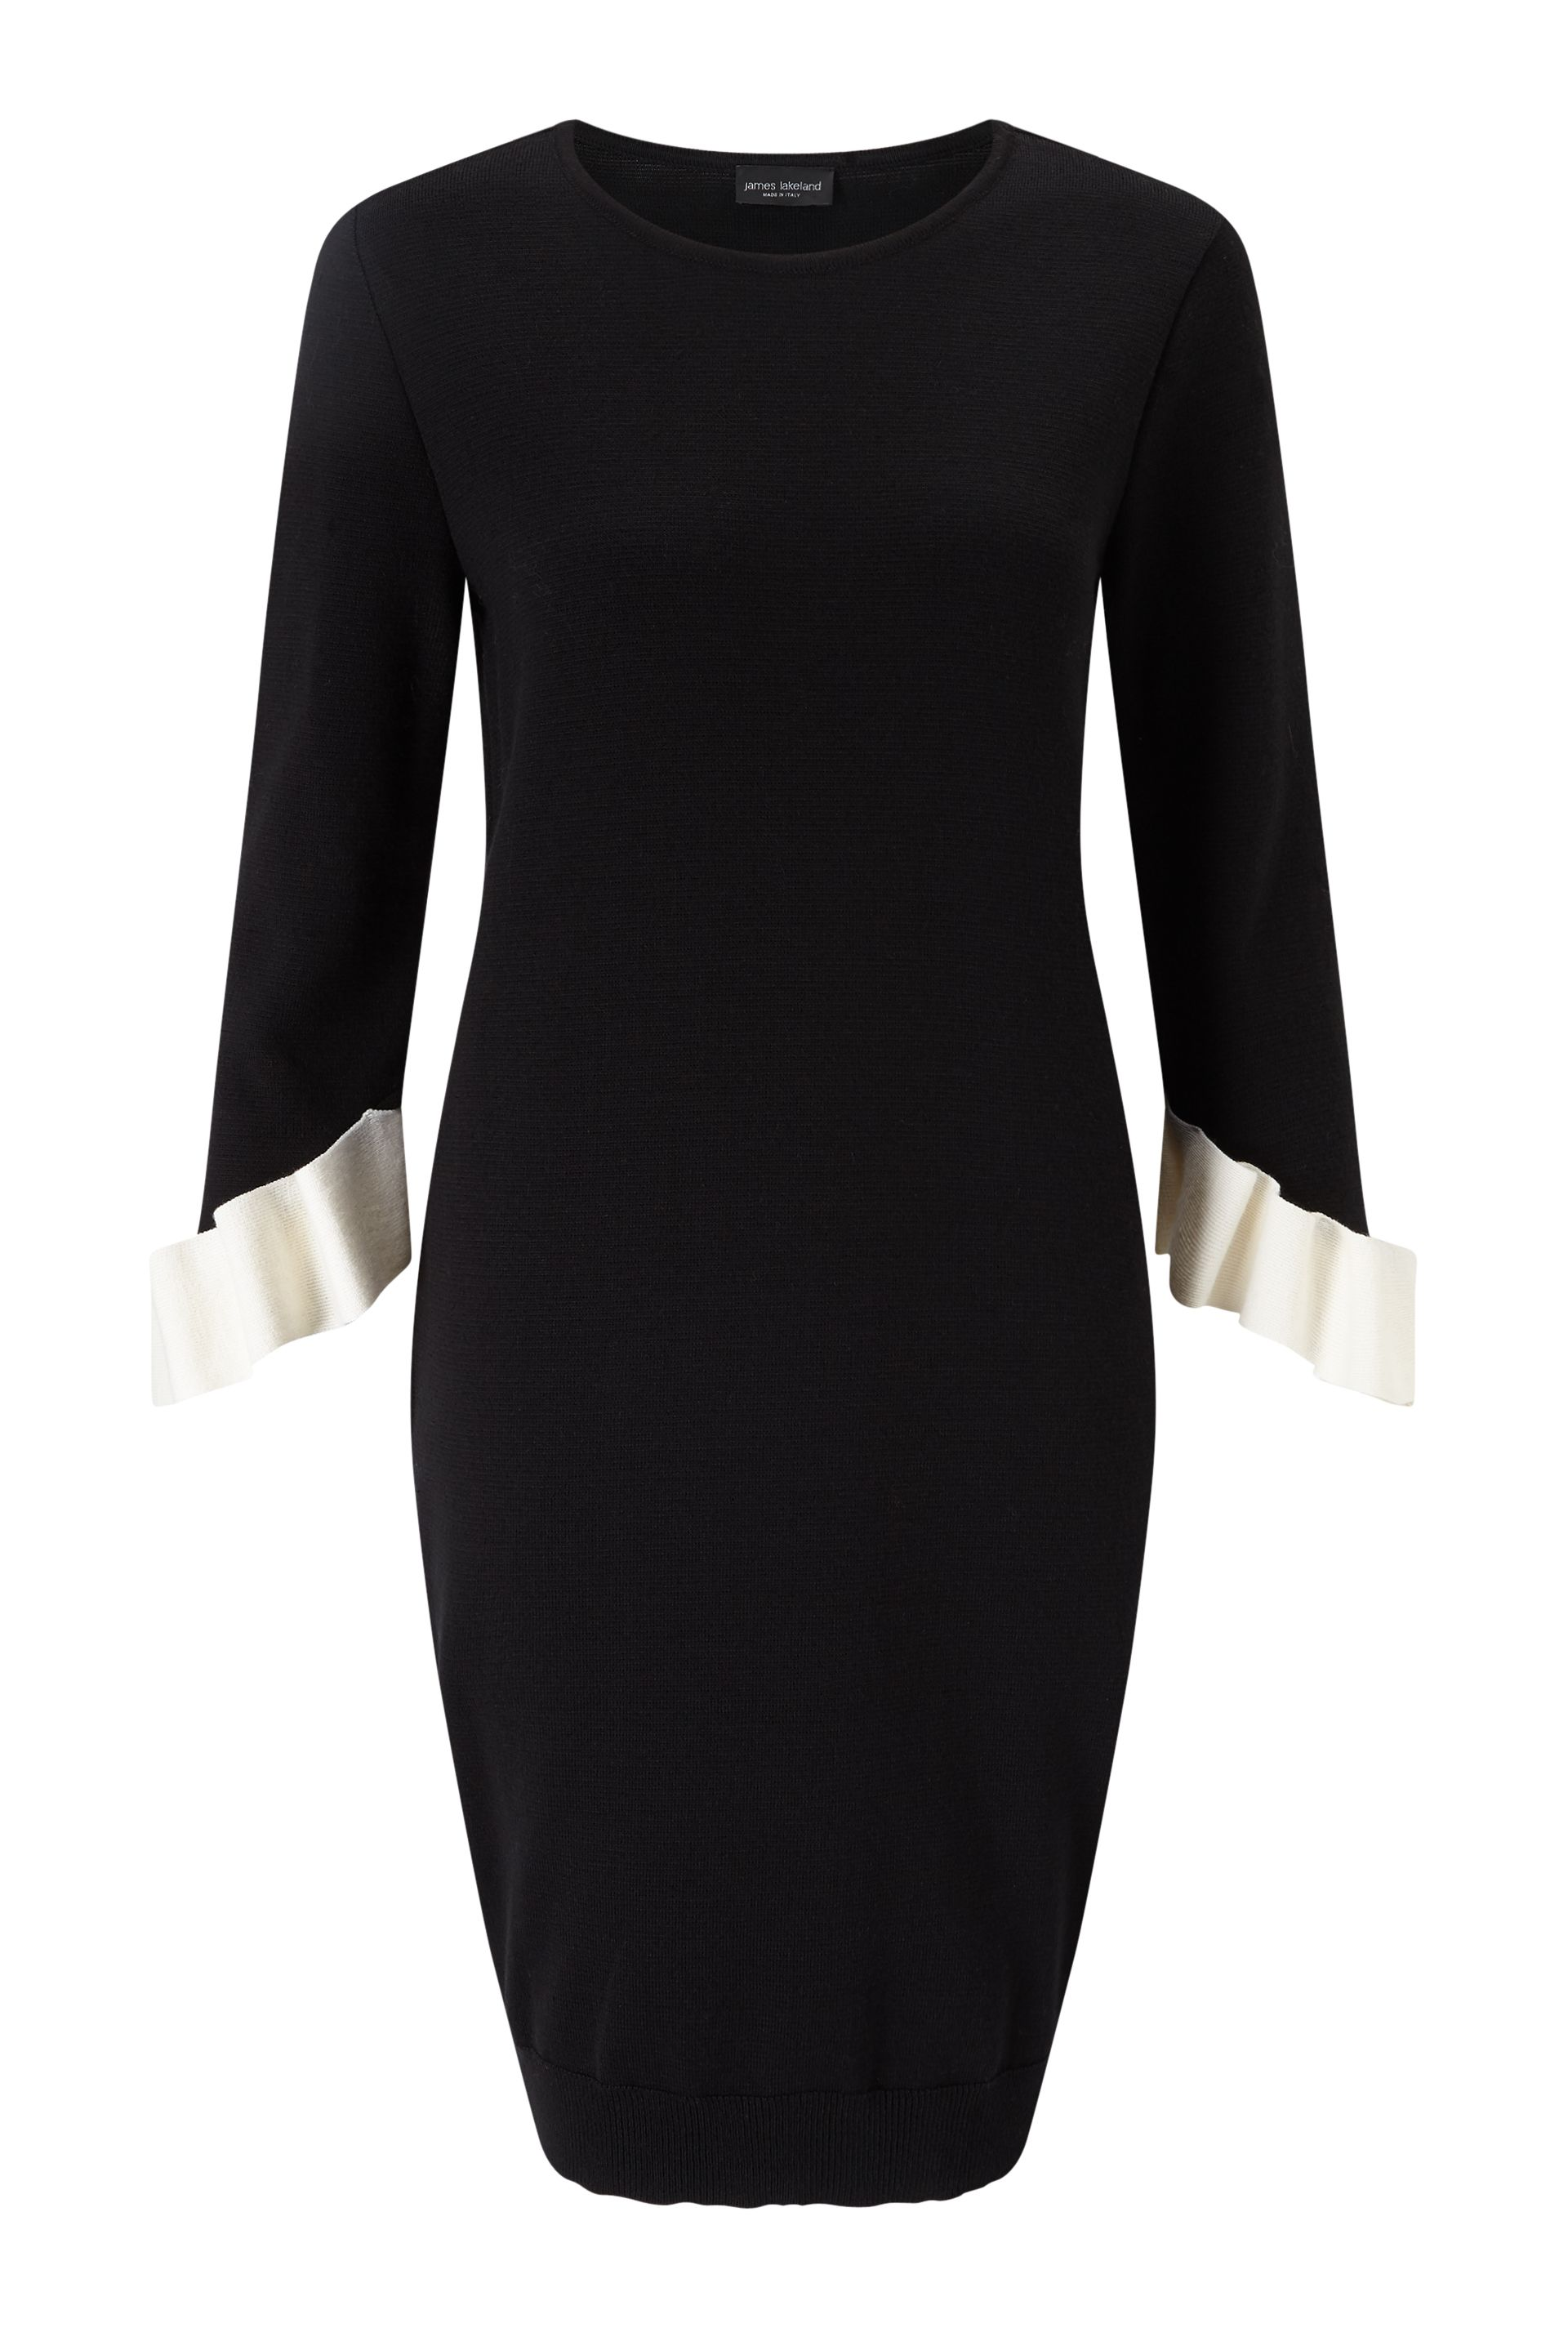 James Lakeland Dress With Frill Sleeves, Black